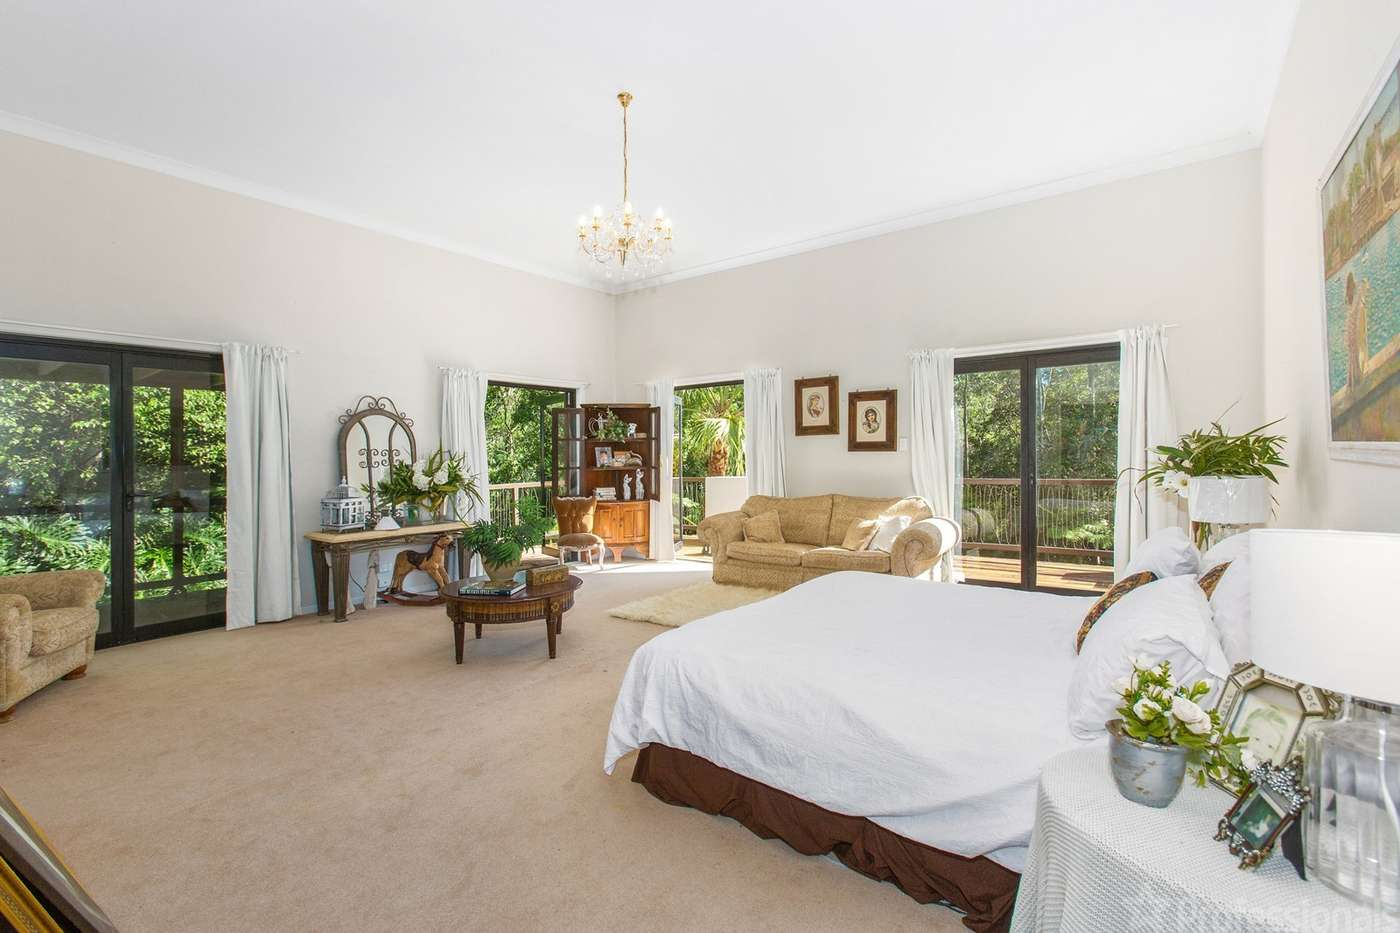 Main view of Homely rural listing, 49 Bramley Drive, Tallebudgera Valley, QLD 4228